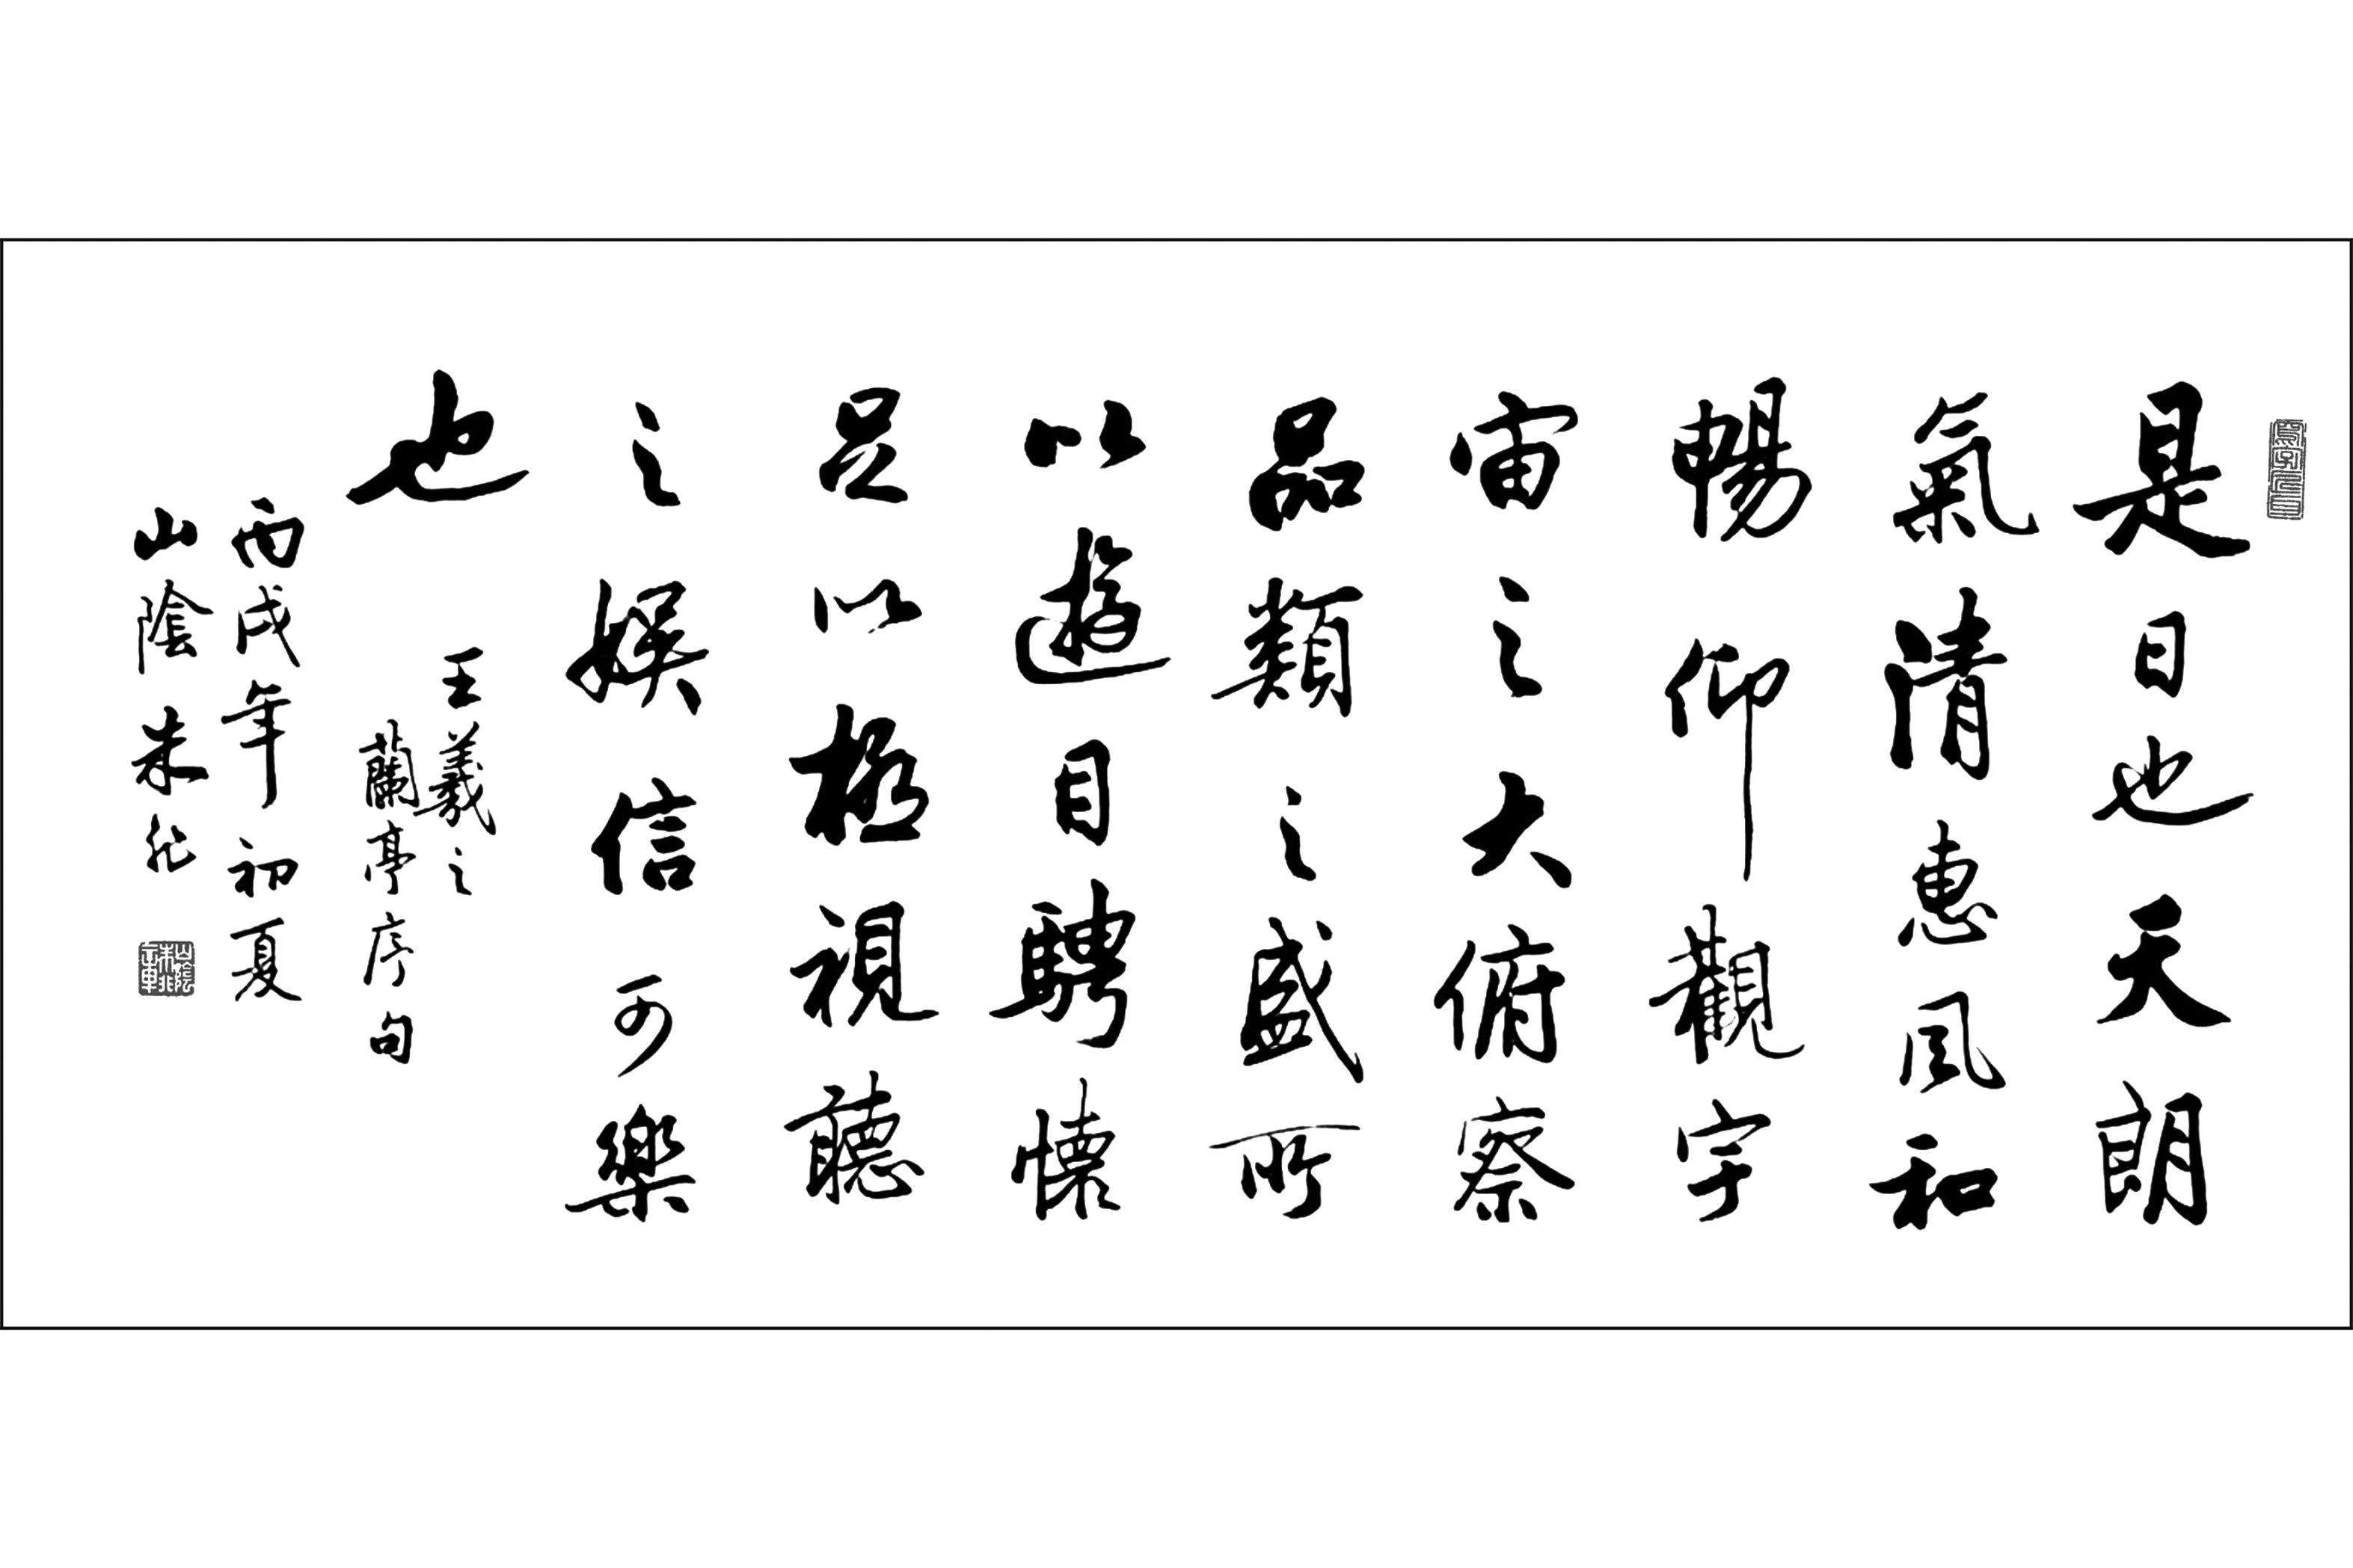 The theory and practice of Wang Xizhi's calligraphy leads